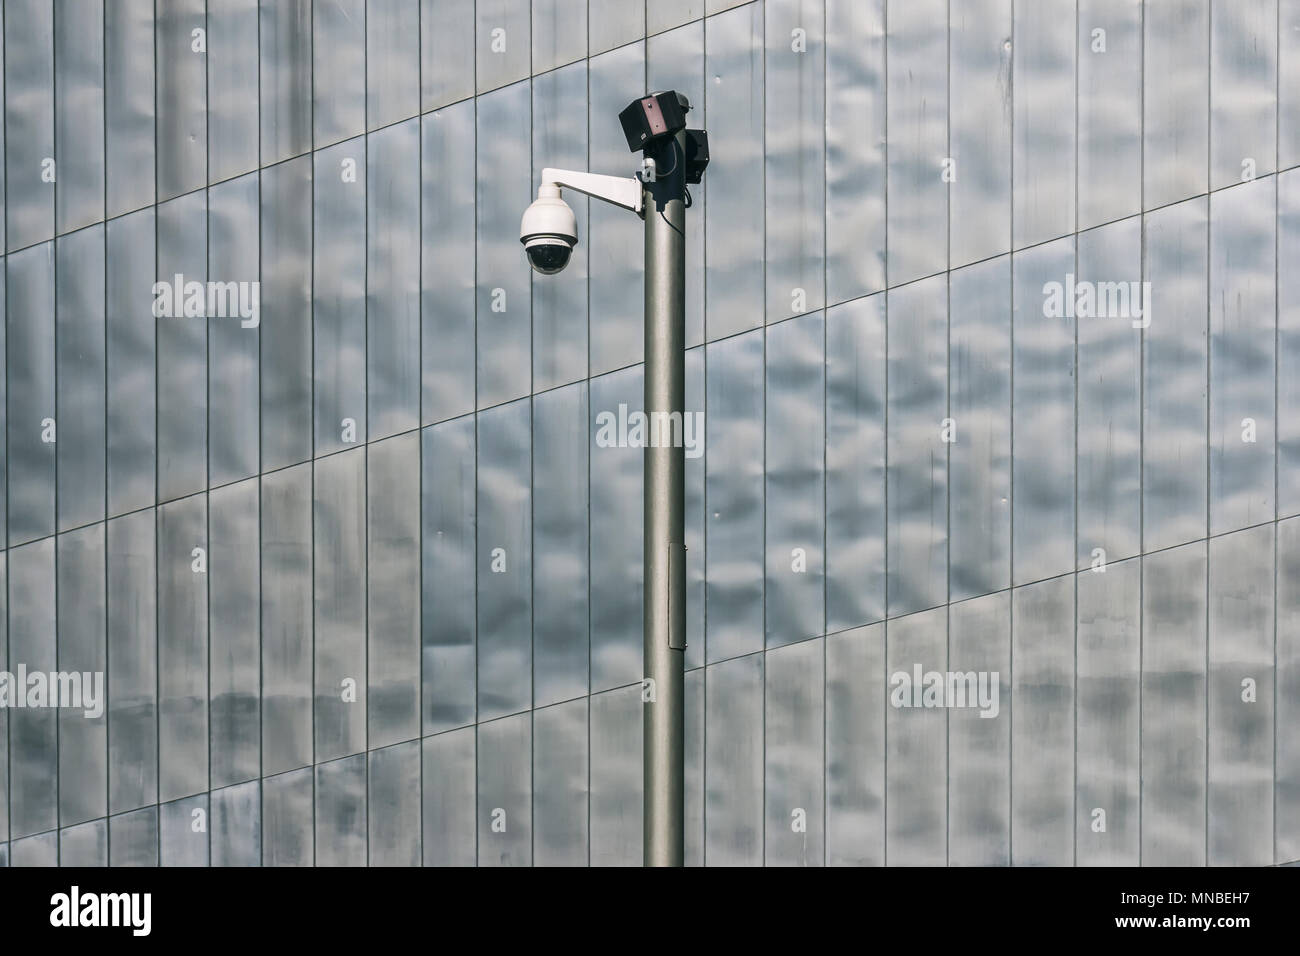 Berlin, Germany, April 06, 2018: Surveillance camera against modern metal facade at Jewish Museum - Stock Image